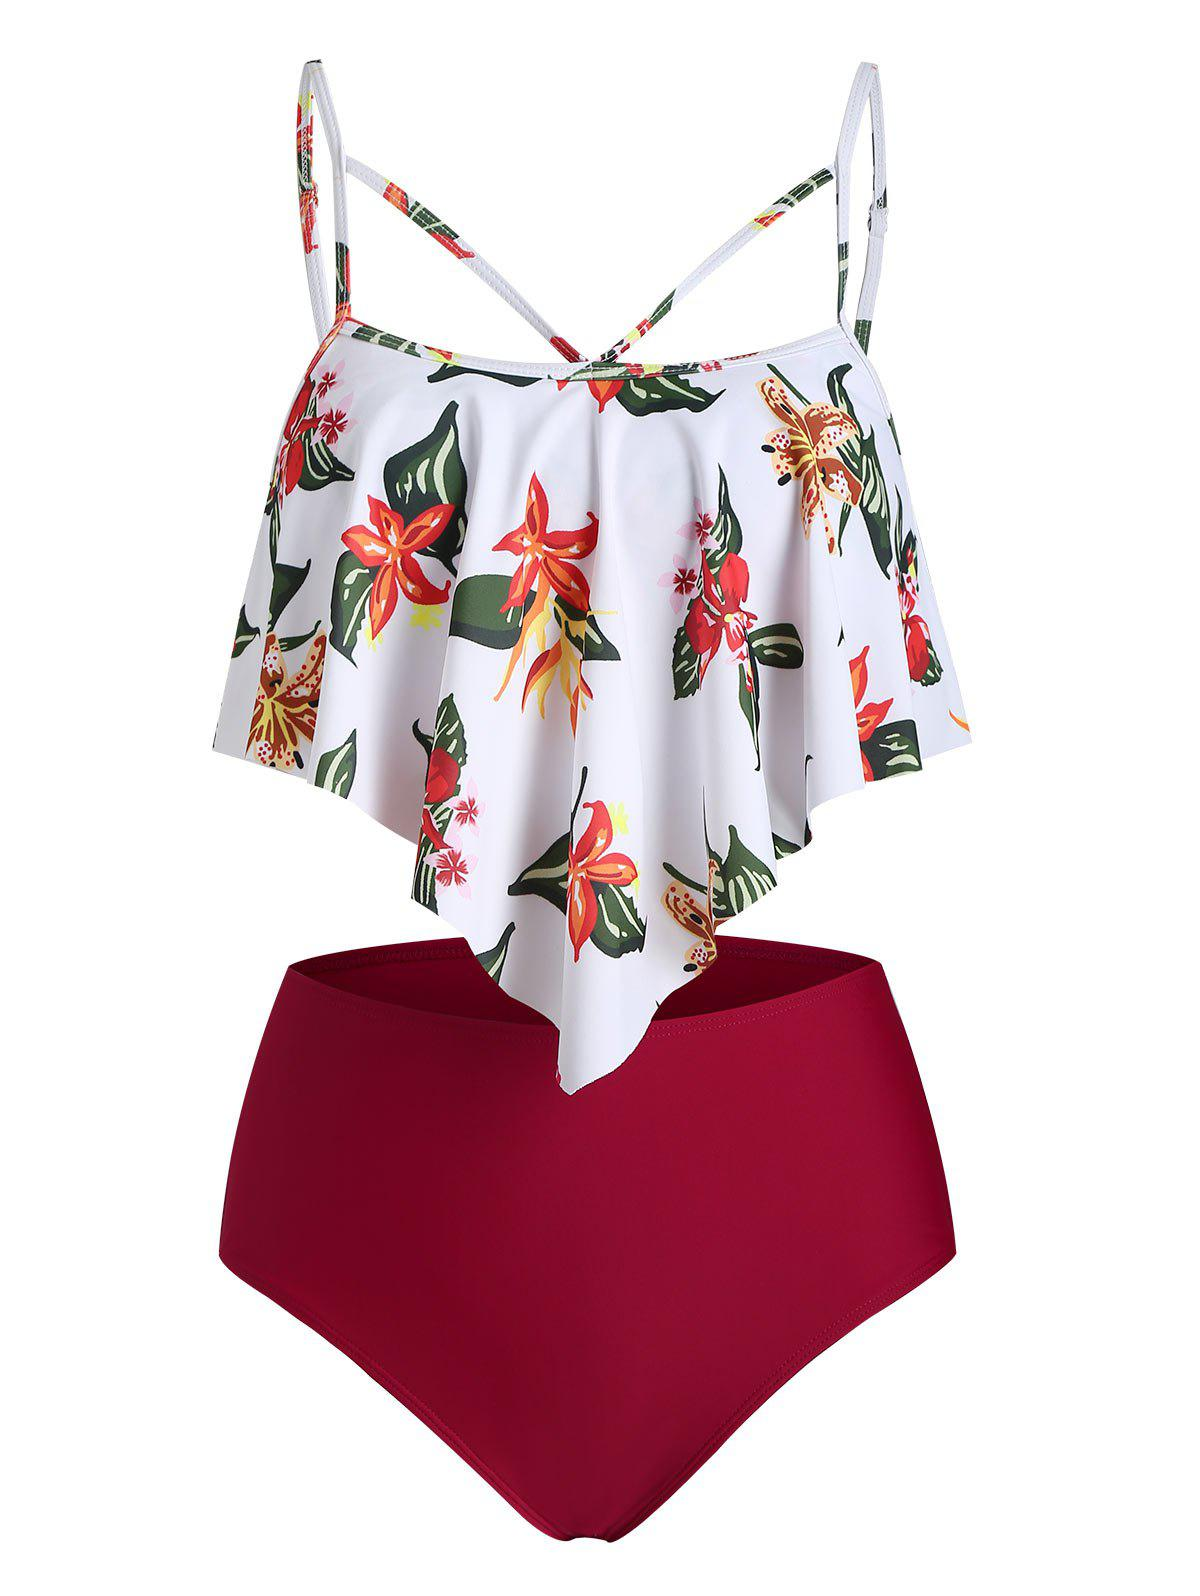 Floral Print Criss Cross Ruffle Overlay Tankini Swimsuit - DEEP RED L